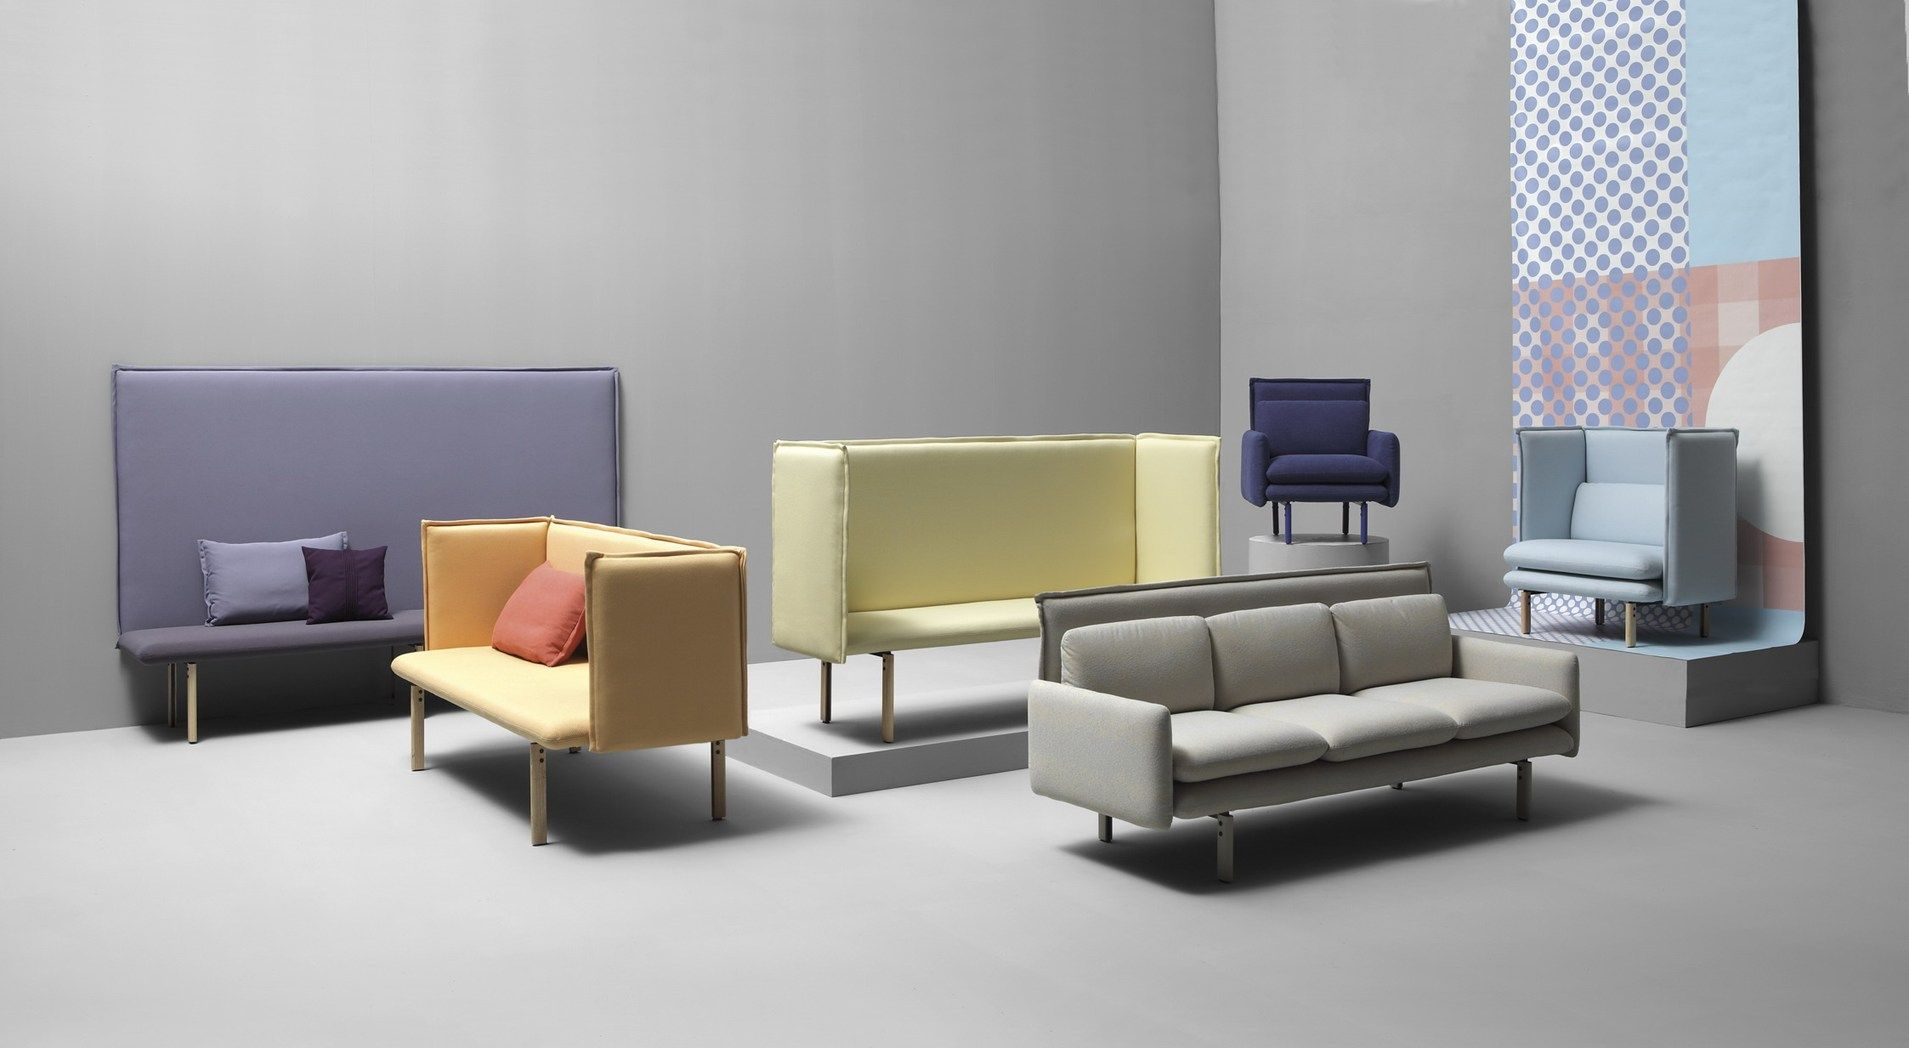 Furnitures And Graphic Design Join Together To Interpret